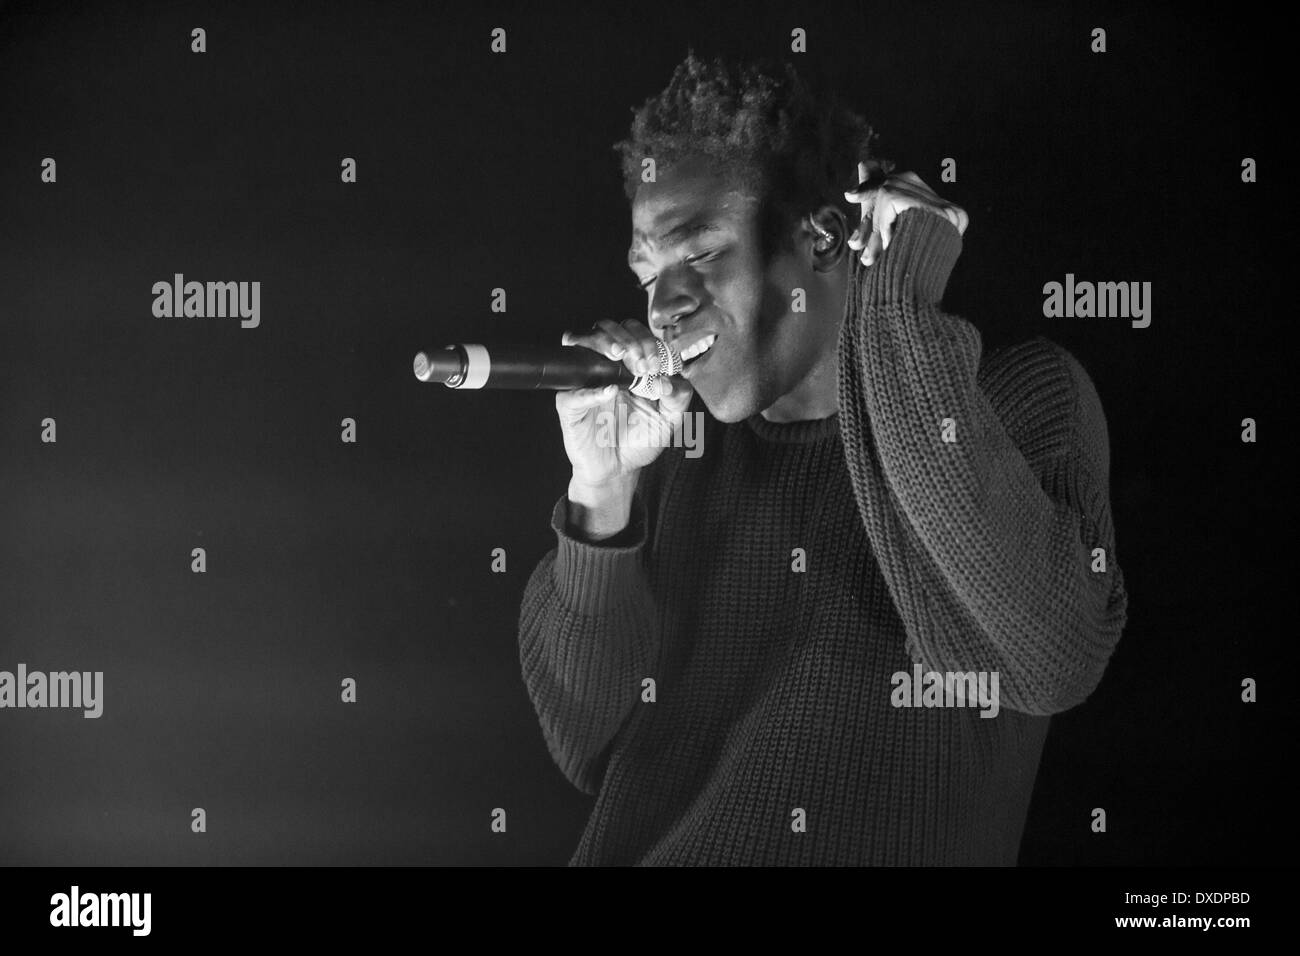 Milwaukee, Wisconsin, USA. 21st Mar, 2014. Rapper CHILDISH GAMBINO (aka DONALD GLOVER) performs live at The Rave's - Stock Image